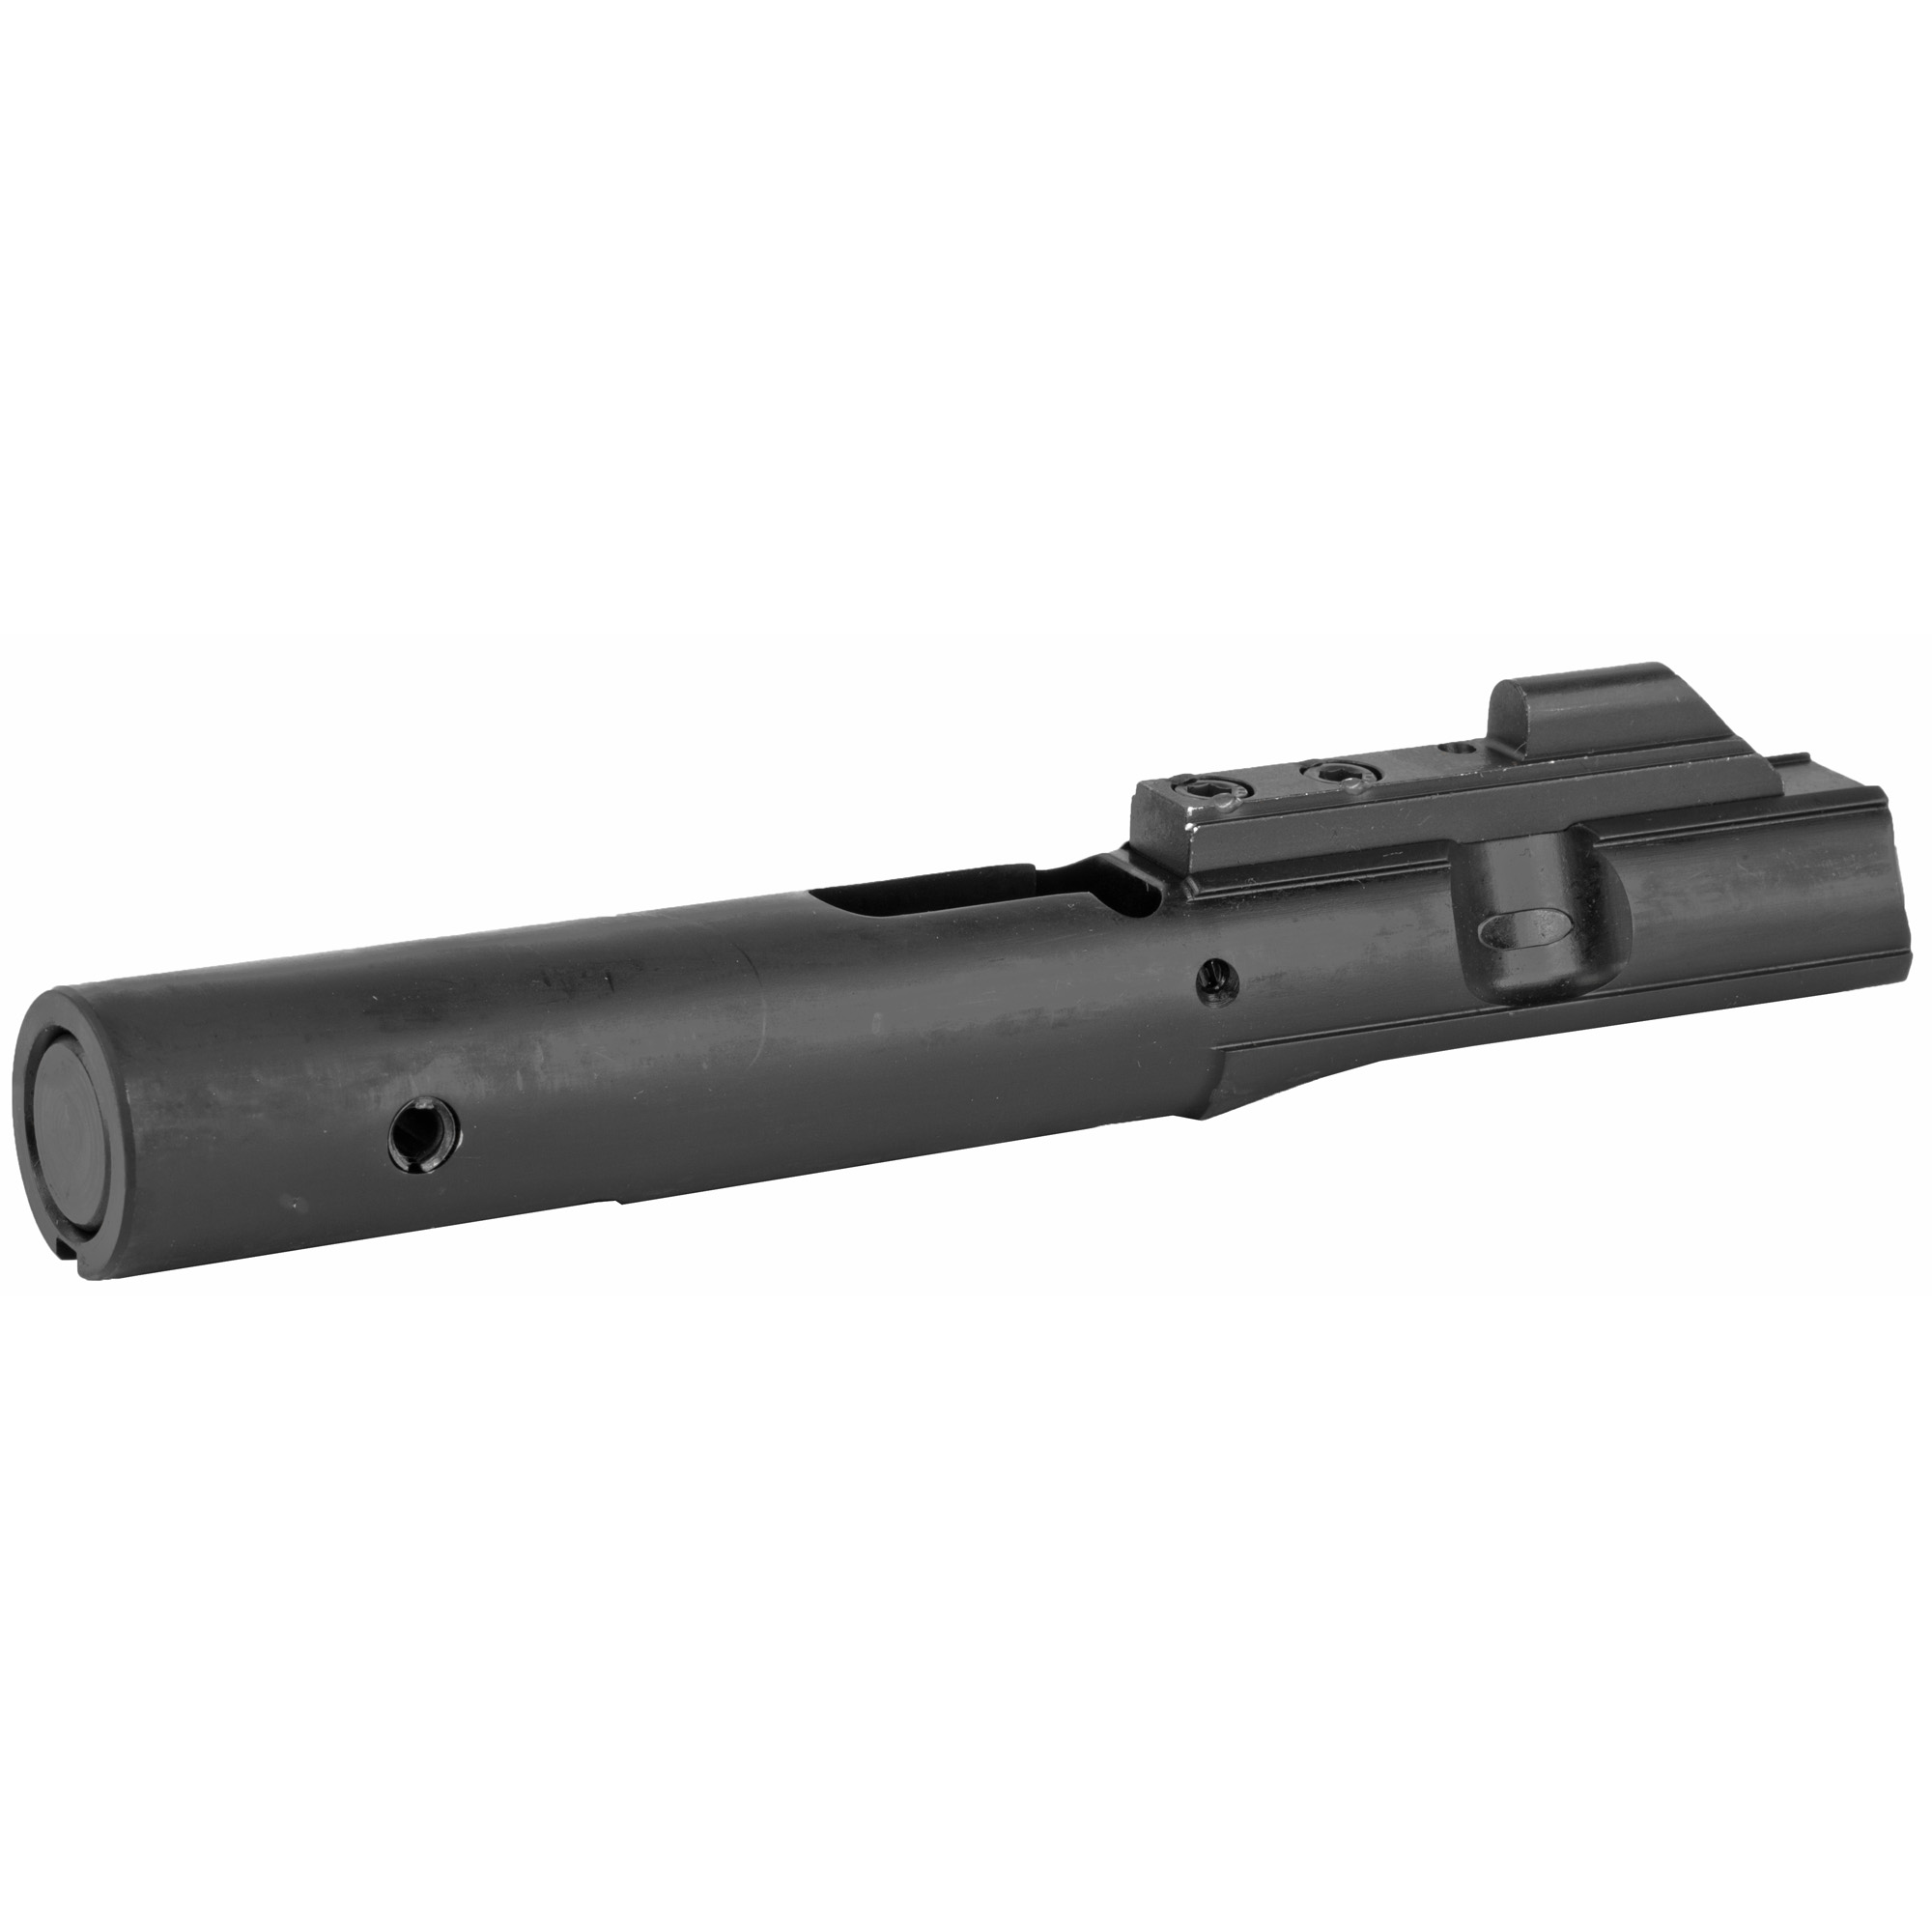 This Enhanced 9mm bolt assembly is complete and ready to drop into your 9mm upper. This unit is ramped for use with a standard AR or M16 hammer; no more having to purchase an additional non-standard part. Will not function with dedicated 9mm Hammer. Requires use of Standard Hammer.